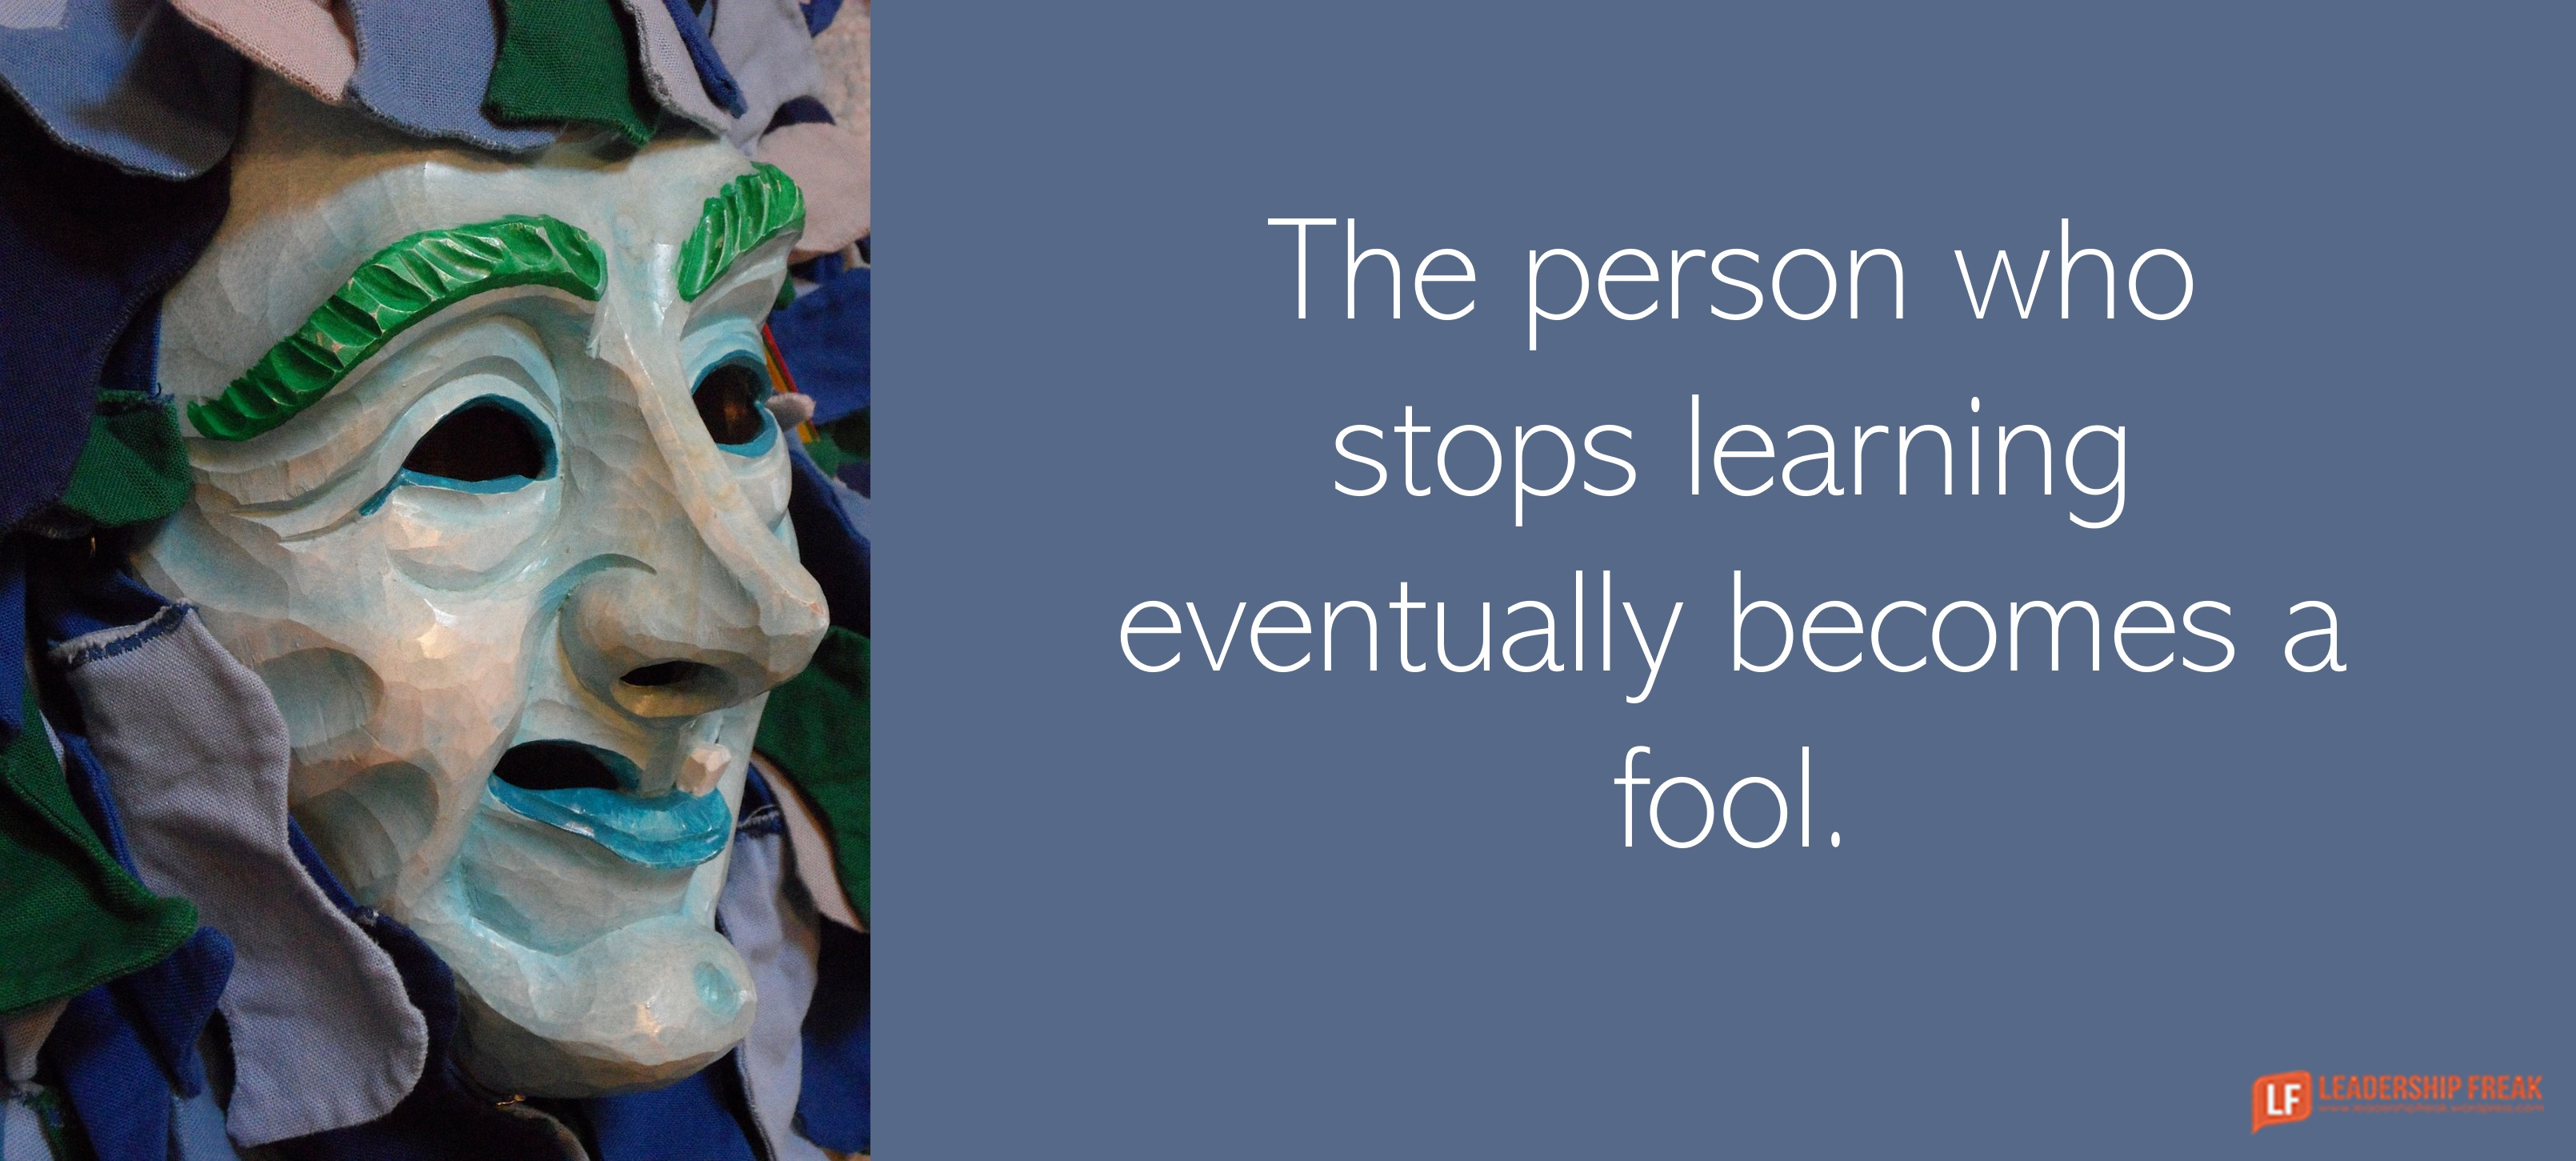 Fool's mask.  The person who stops learning eventually becomes a fool.